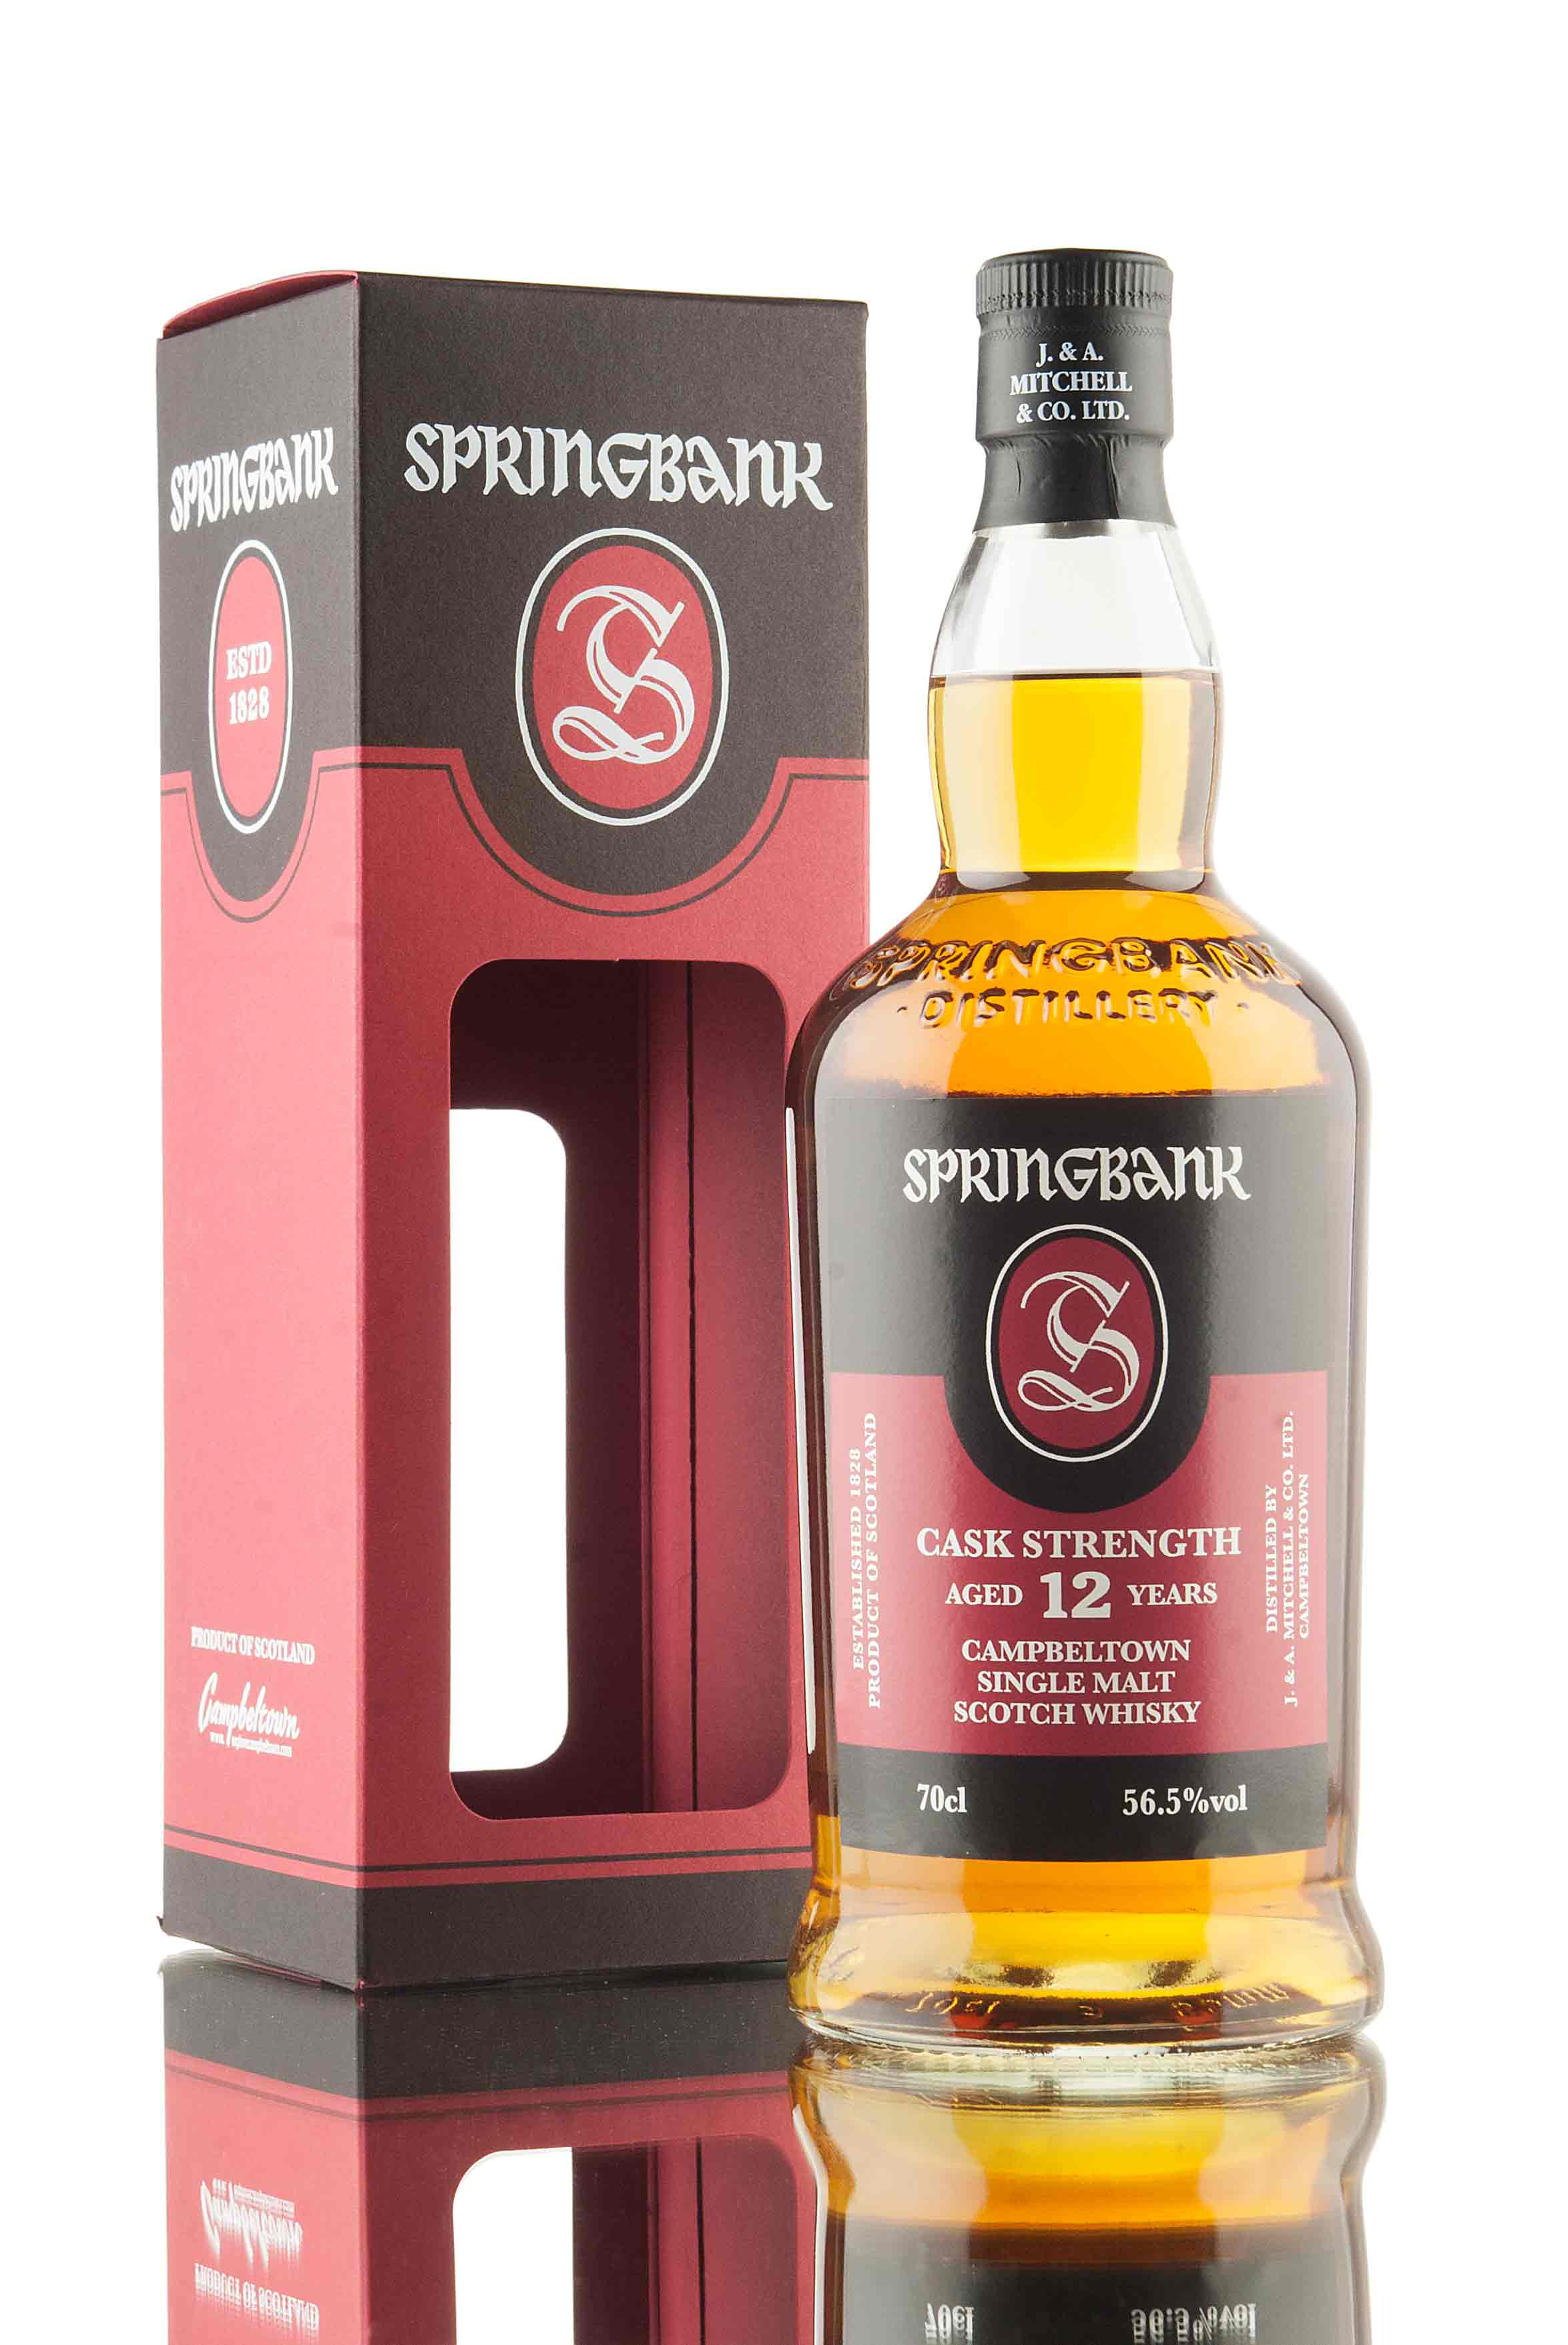 Springbank 12 Year Old Cask Strength - 56.5%